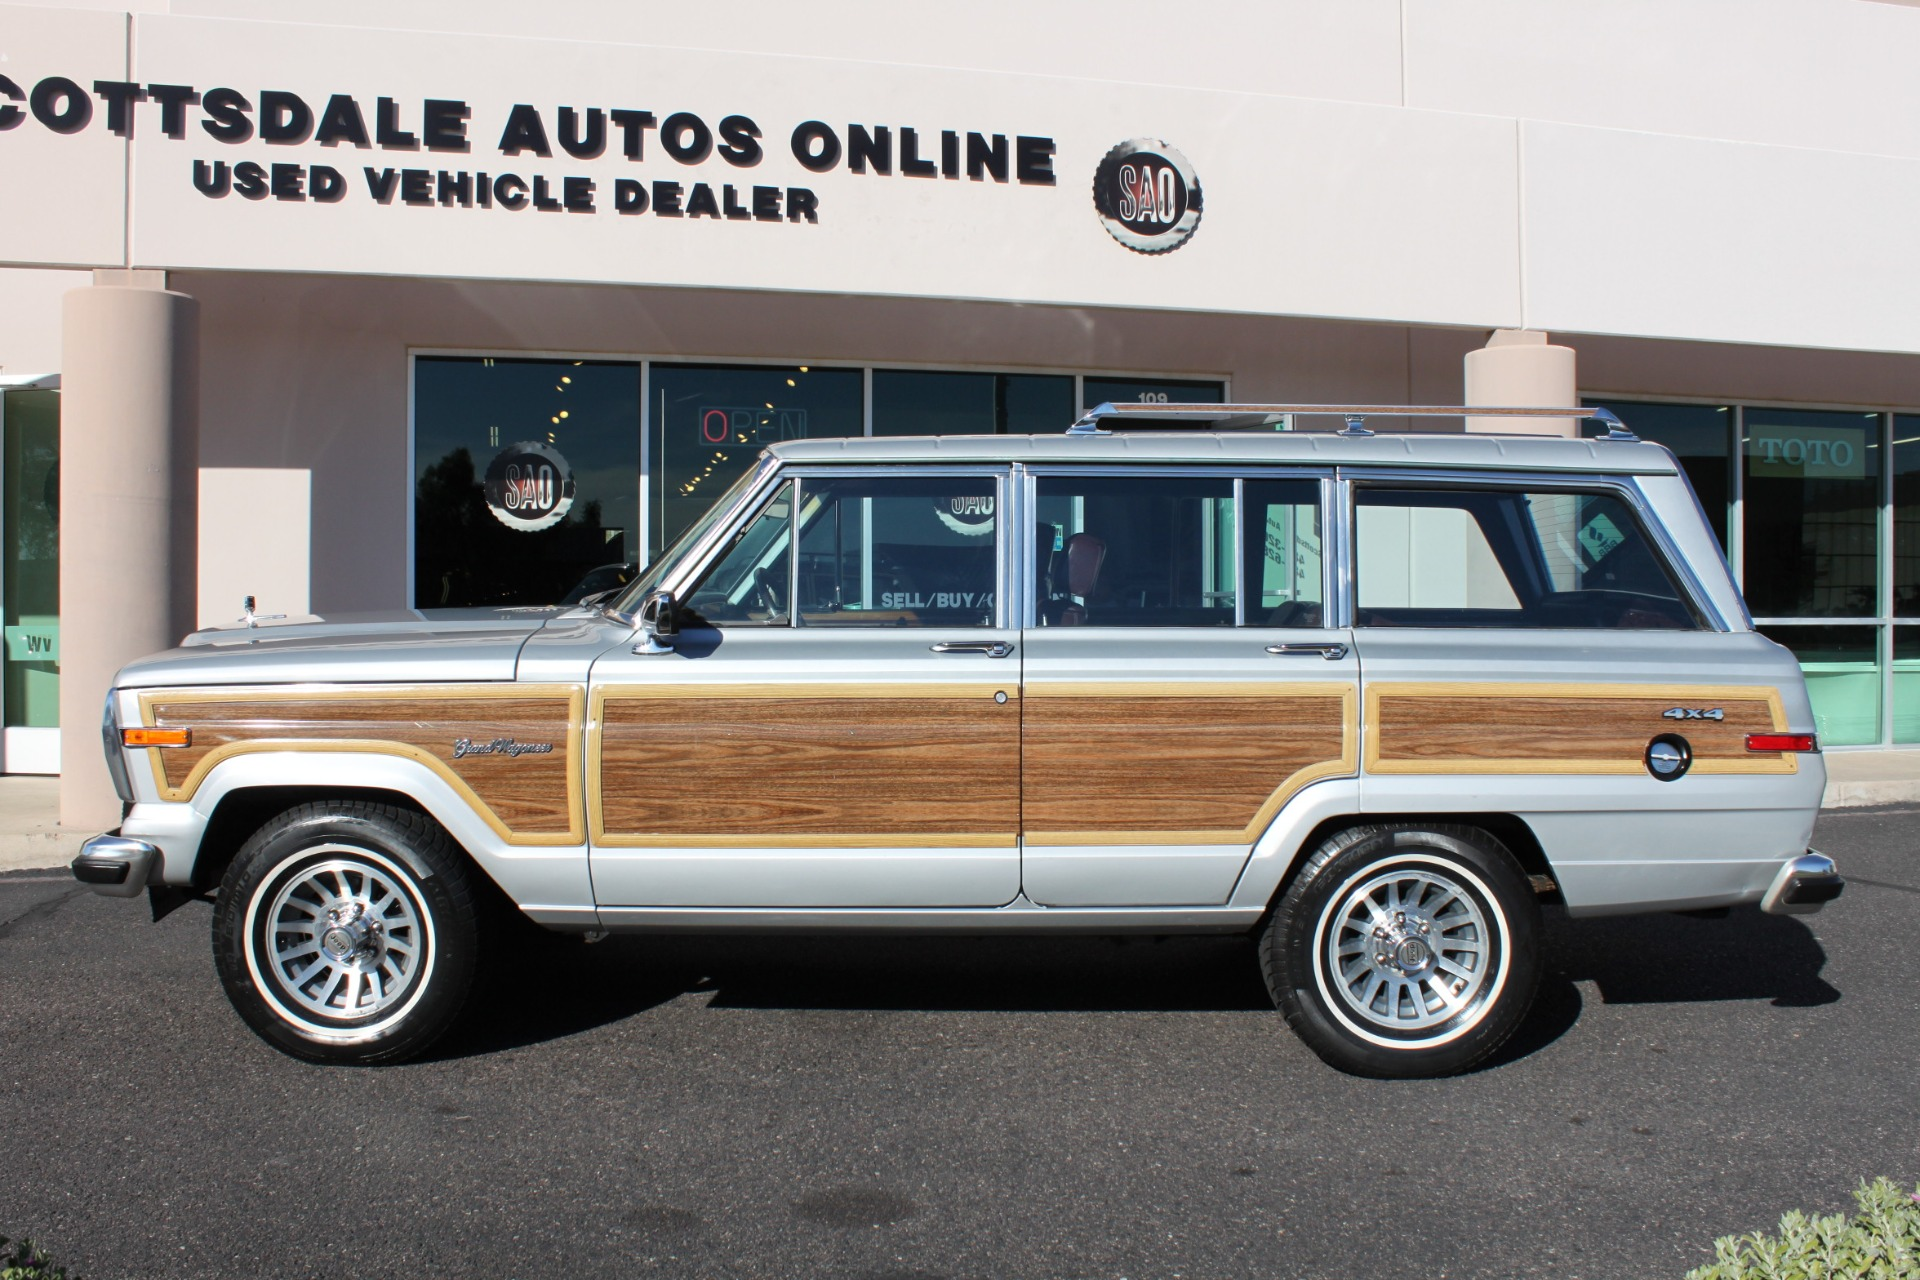 Used-1989-Jeep-Grand-Wagoneer-Wagoneer